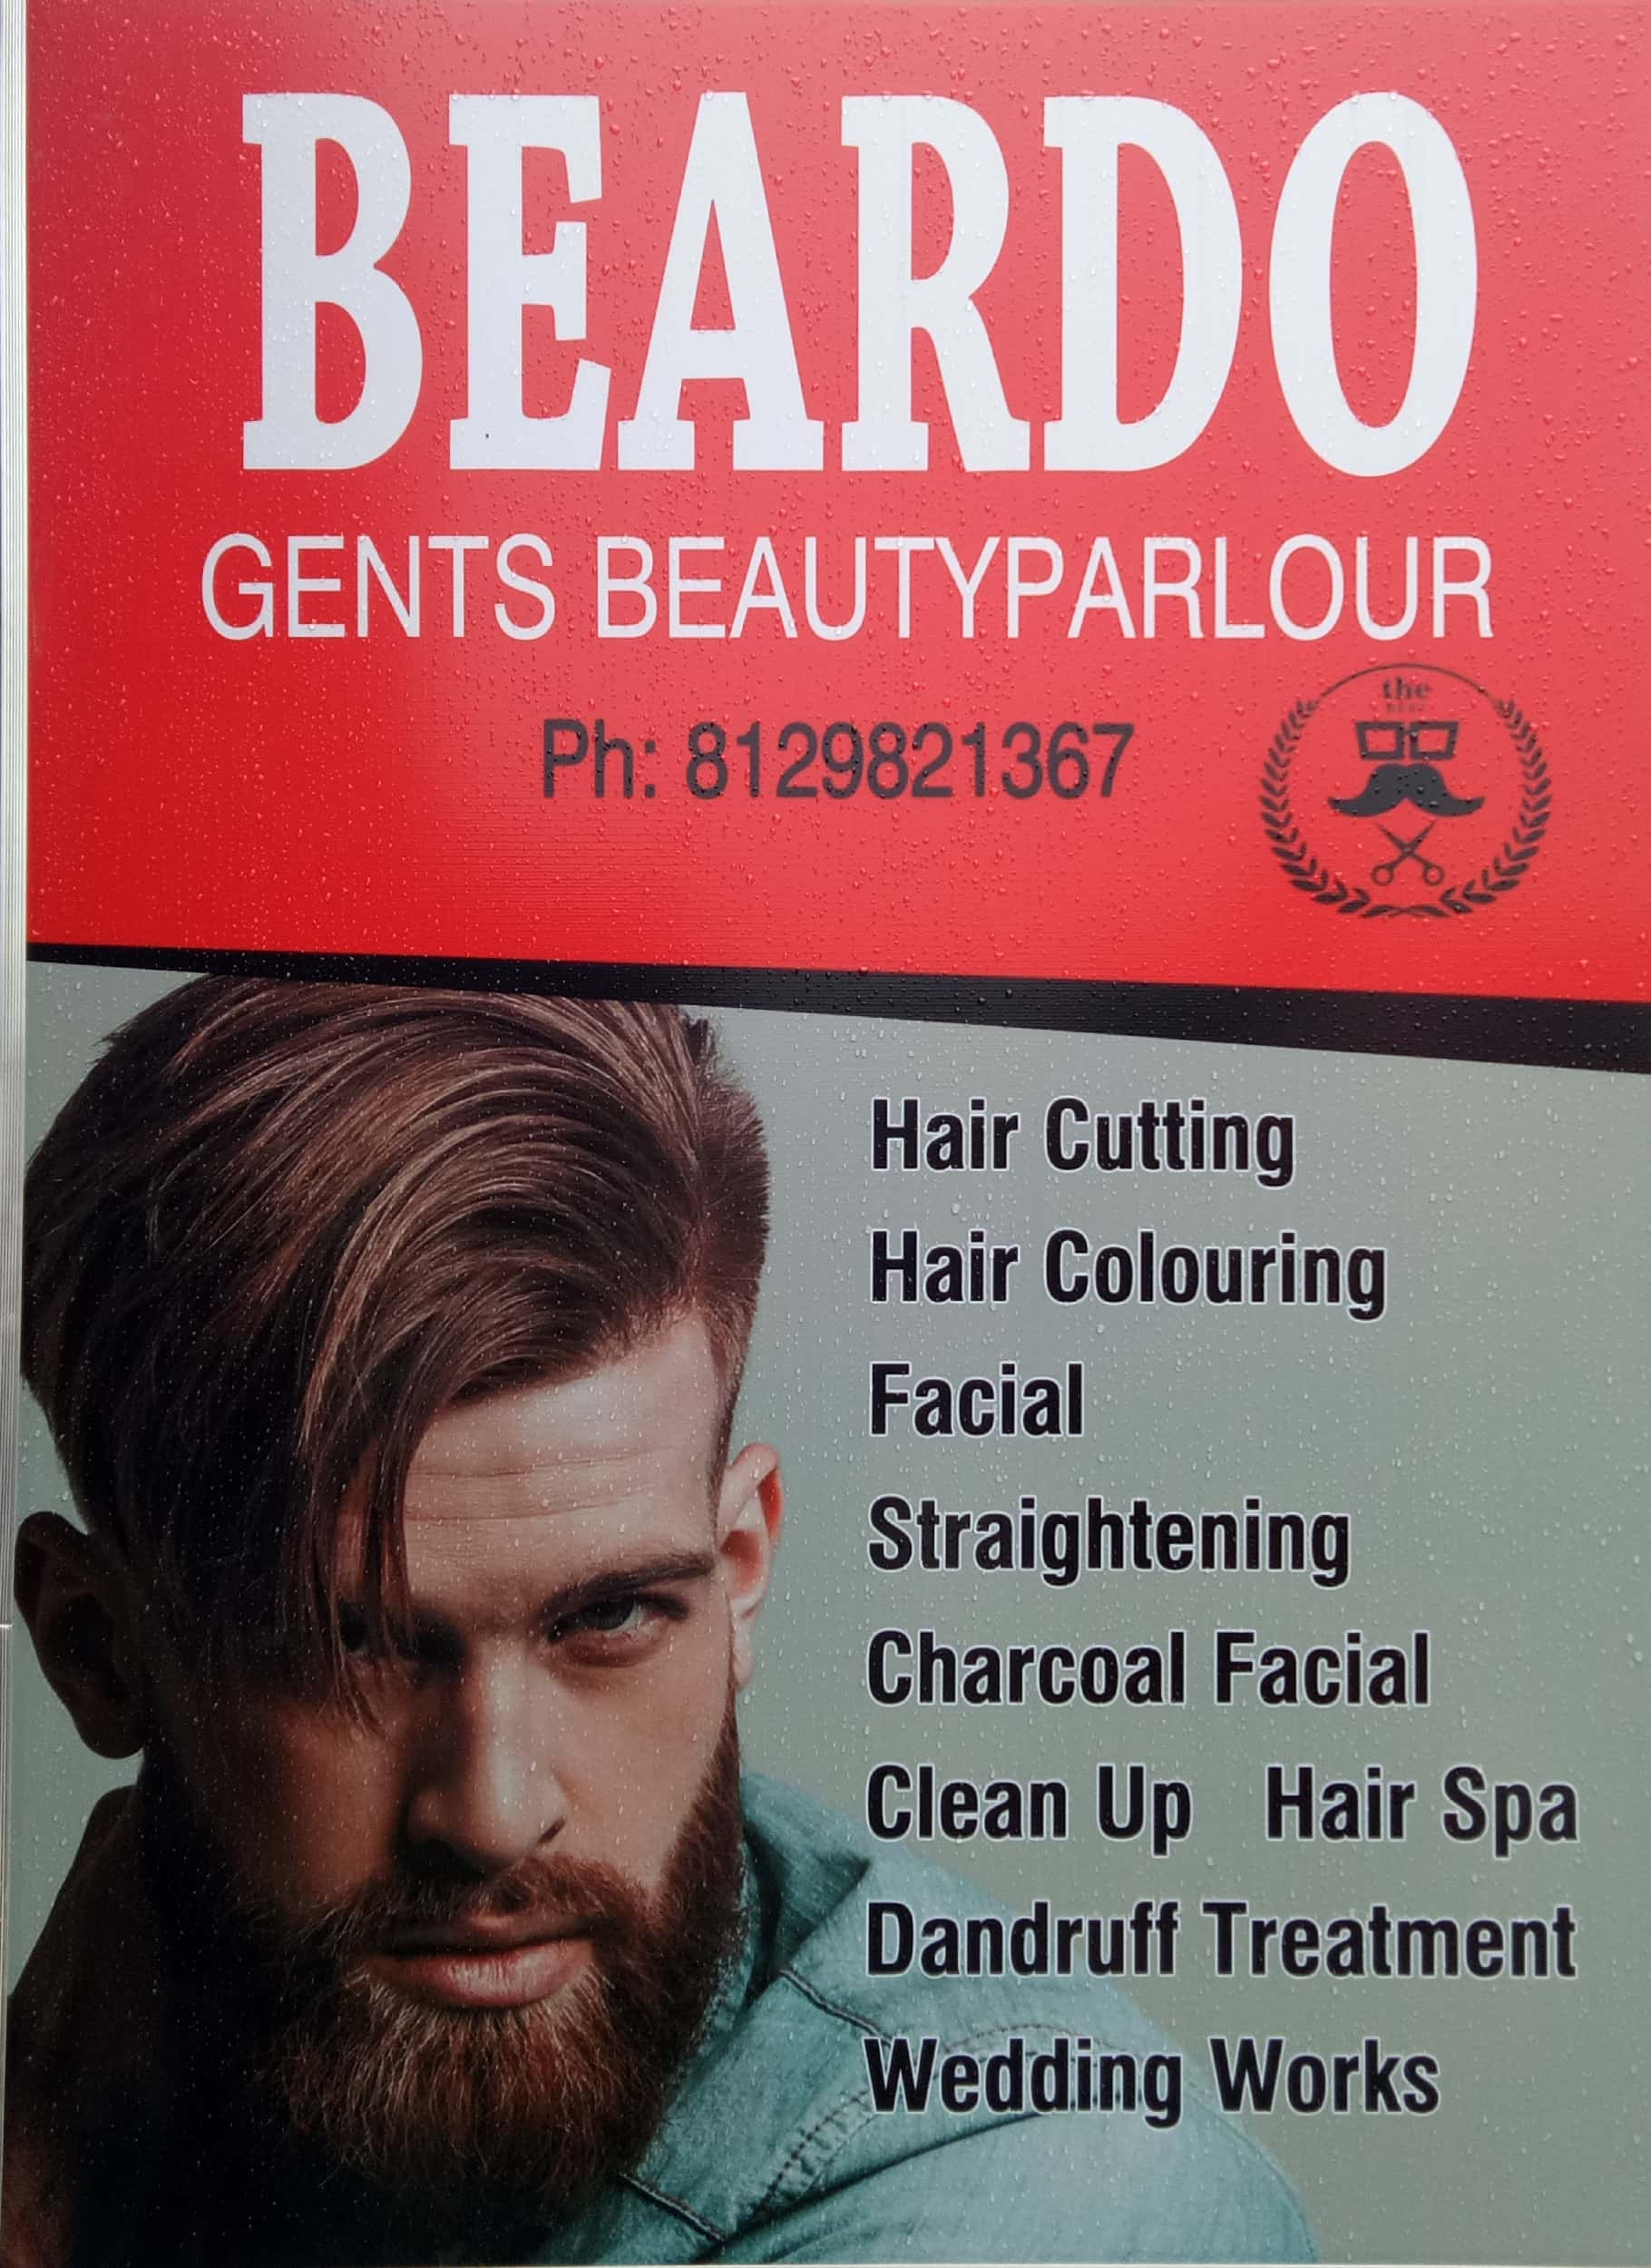 BEARDO GENTS BEAUTY PARLOUR, GENTS BEAUTY PARLOUR,  service in Aluva, Ernakulam